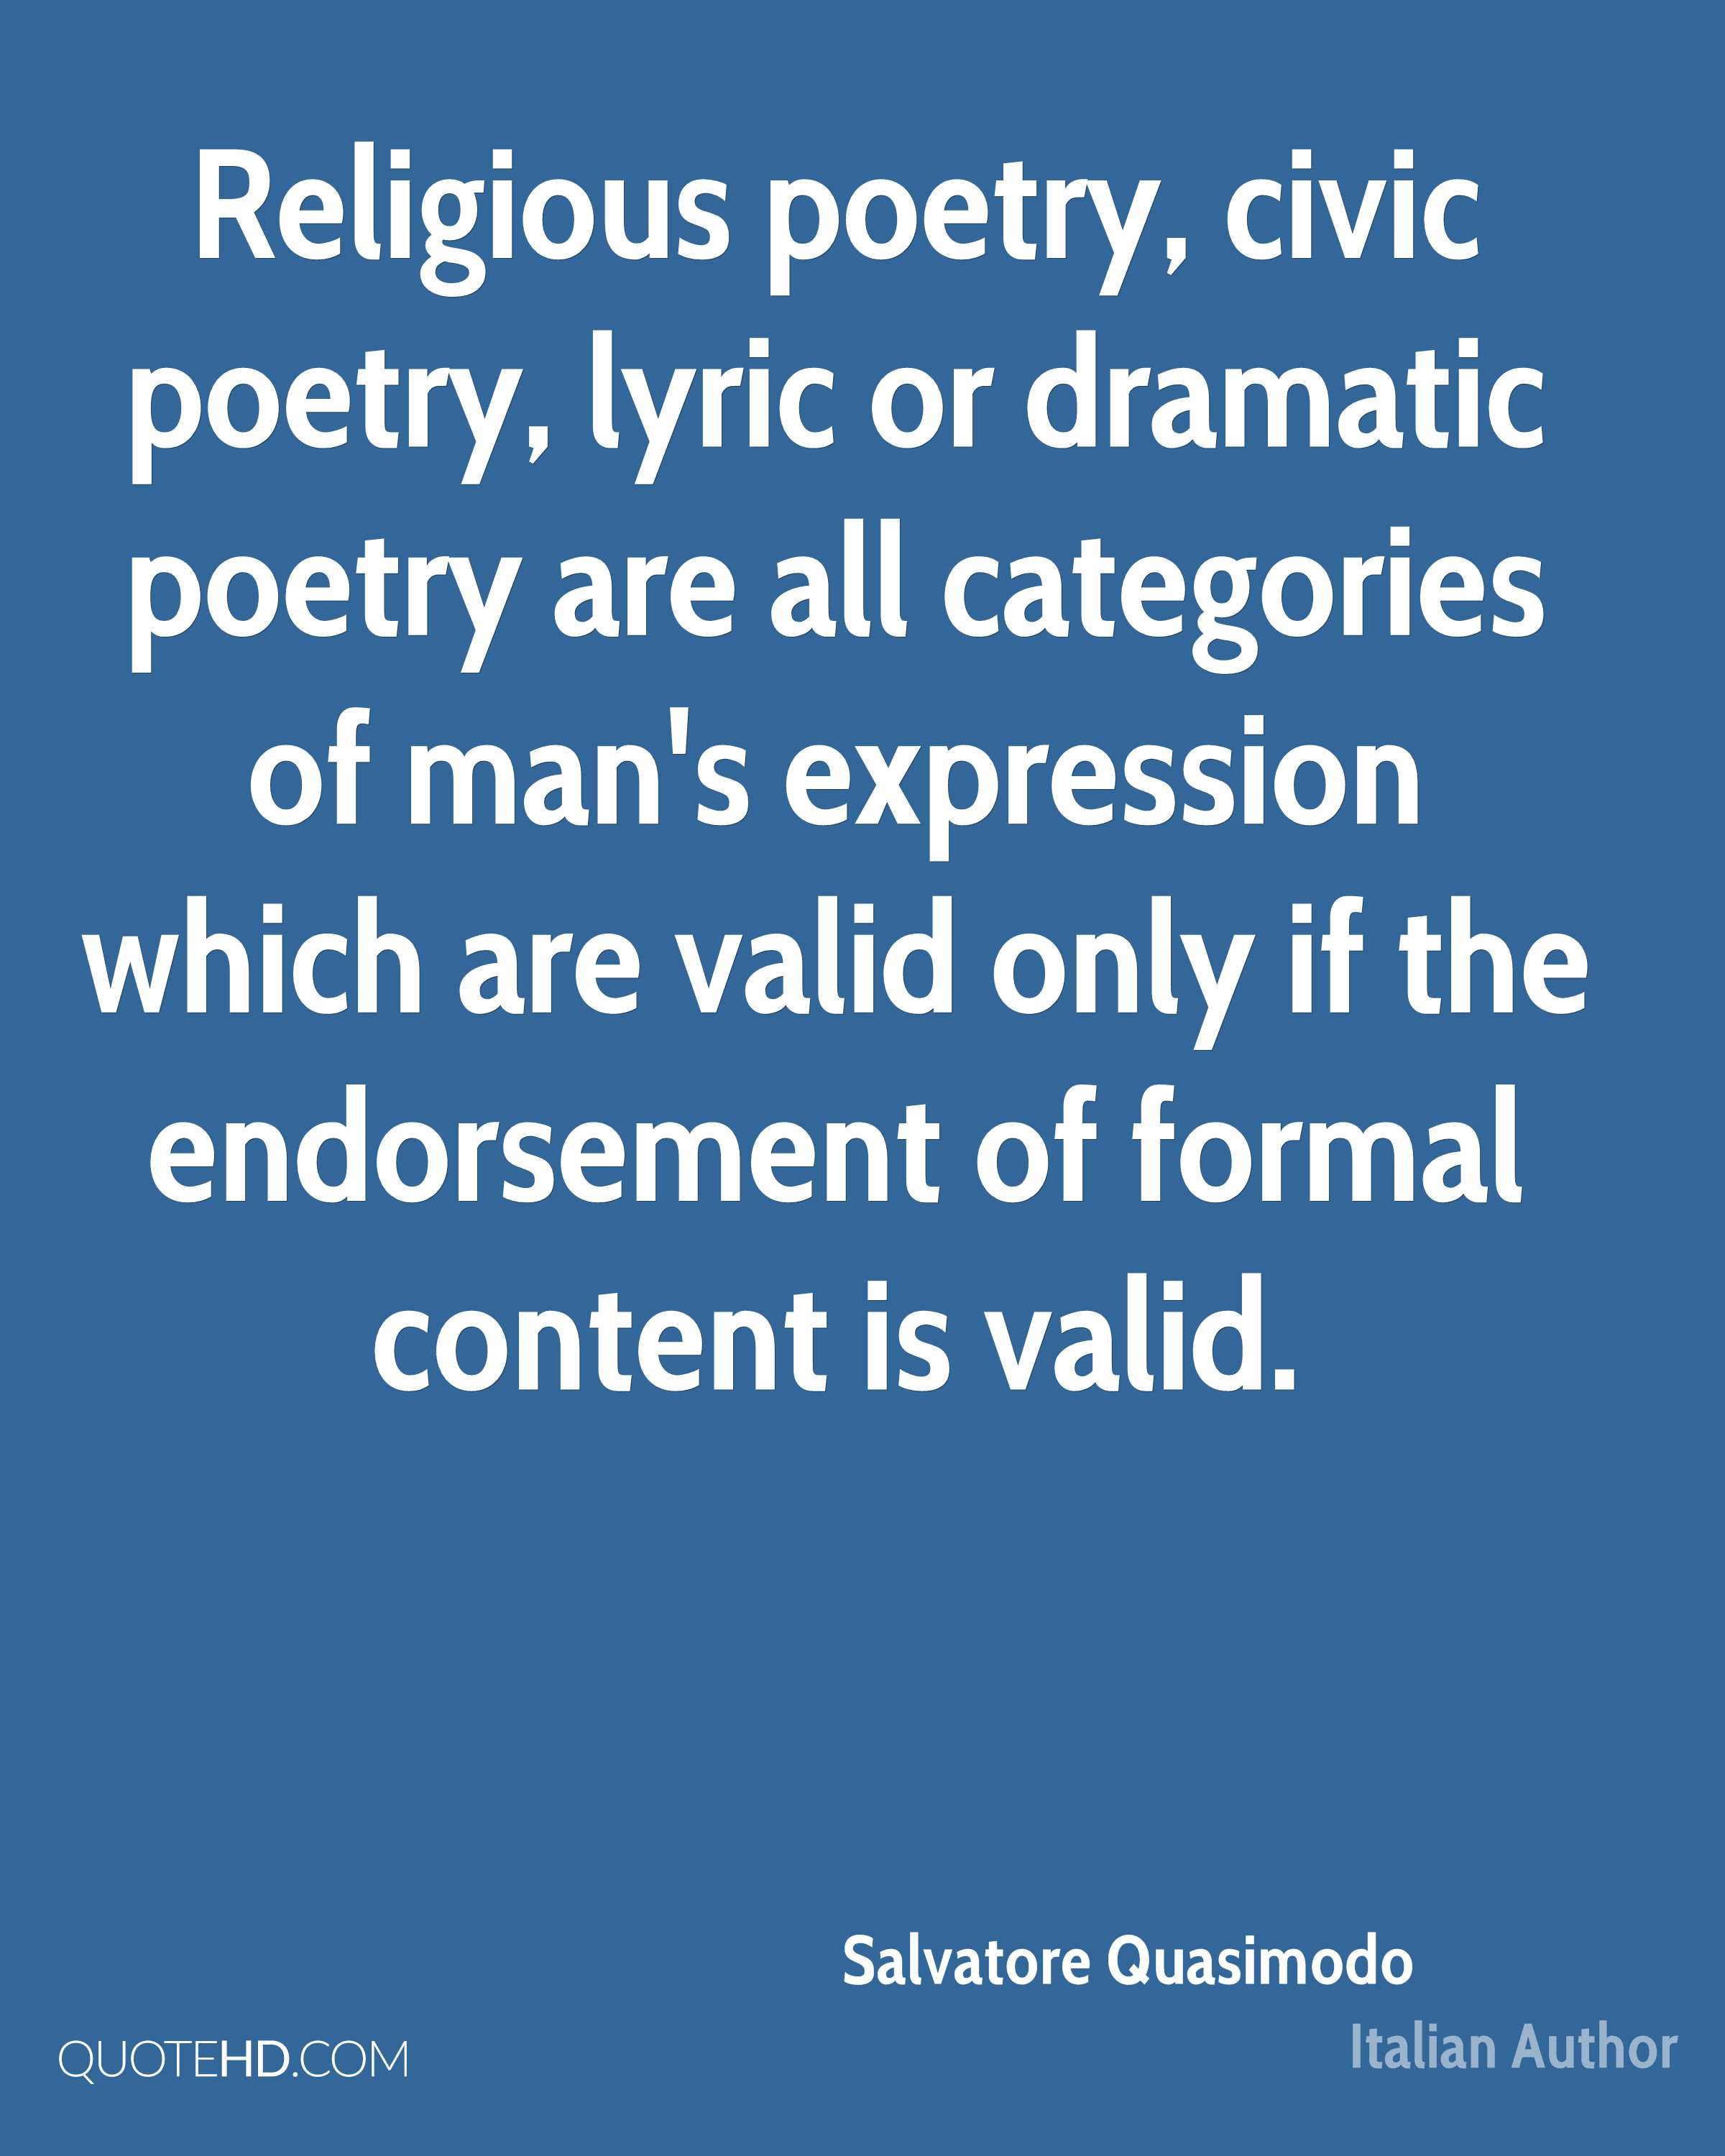 Religious poetry, civic poetry, lyric or dramatic poetry are all categories of man's expression which are valid only if the endorsement of formal content is valid.